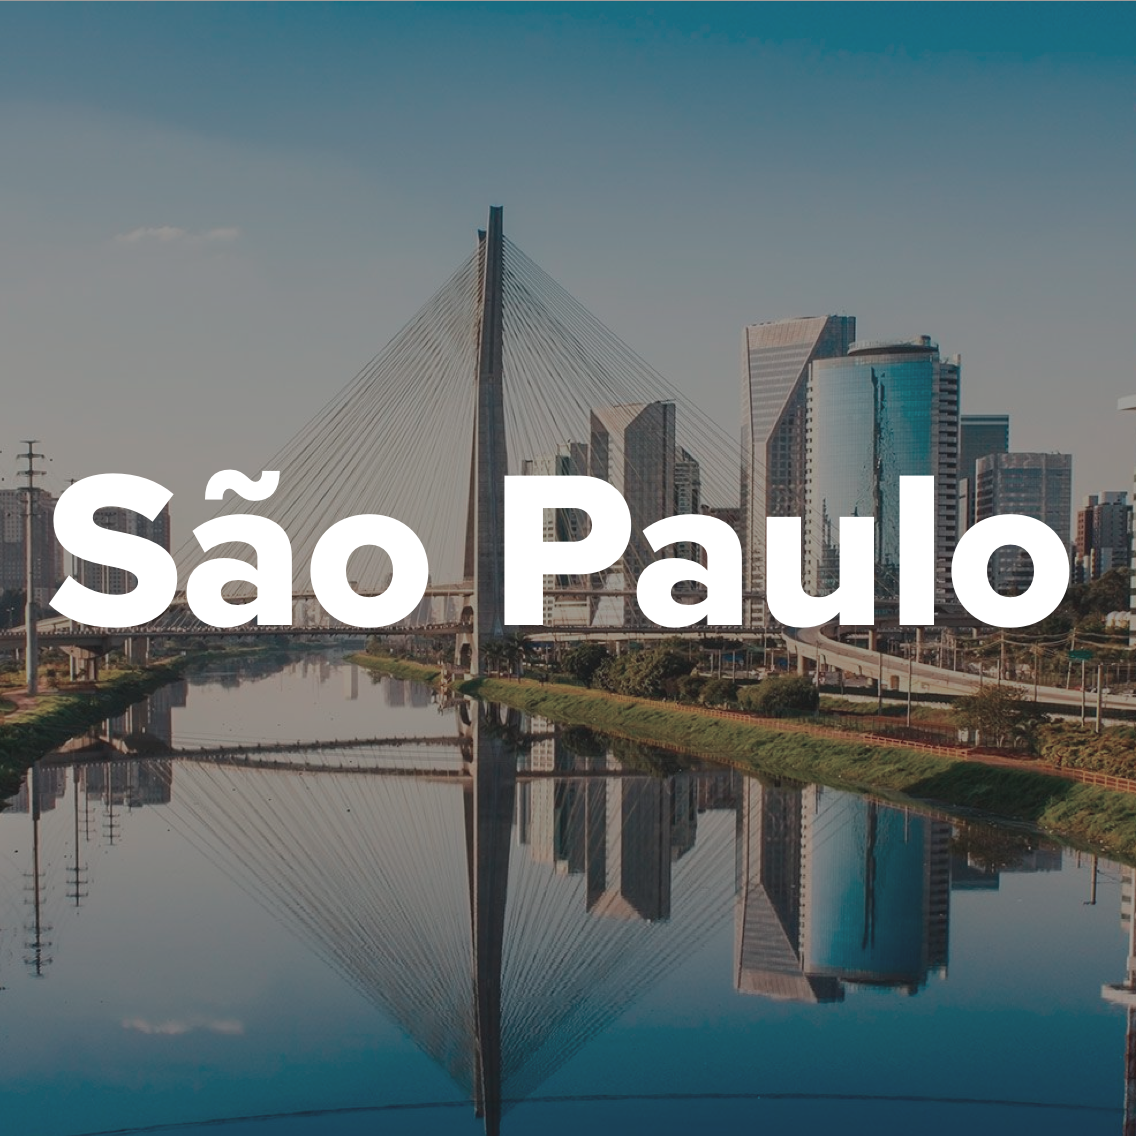 connect-roadshow-website-image-2020 - Saopaulo.png